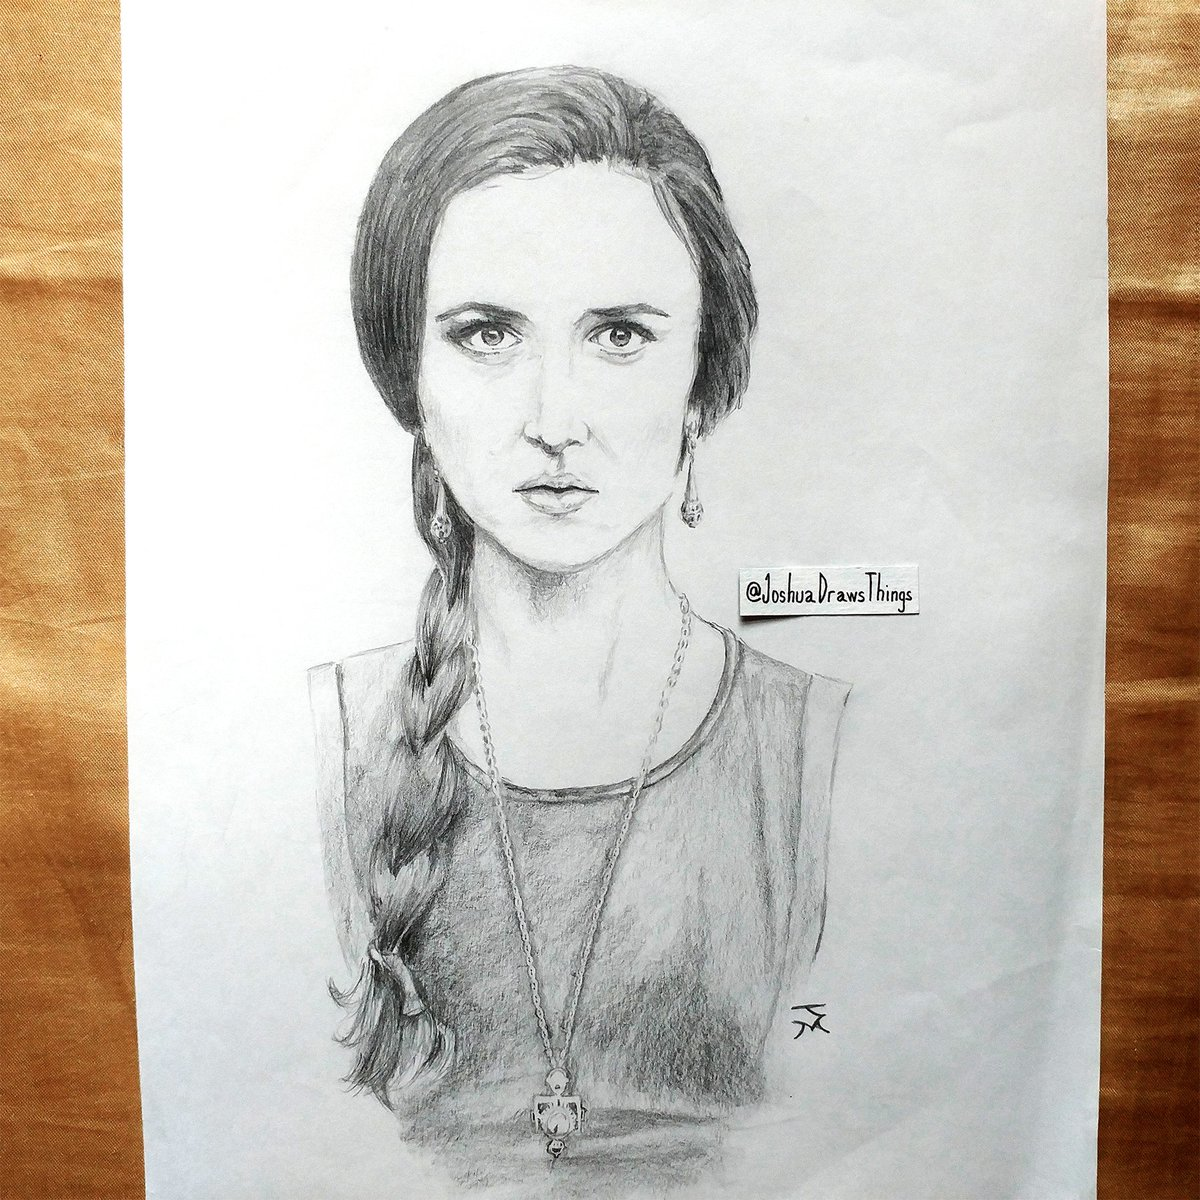 Happy 5th Anniversary, #TheQuest!  Here's an old sketch I did of @susannschka as #QueenRalia (orig ref pic by @roberic1).  Details:   @TheQuestABC is truly one of the greatest shows to ever air. Here's to season 2 so we, #TheQuestArmy can #ContinueTheQuest!